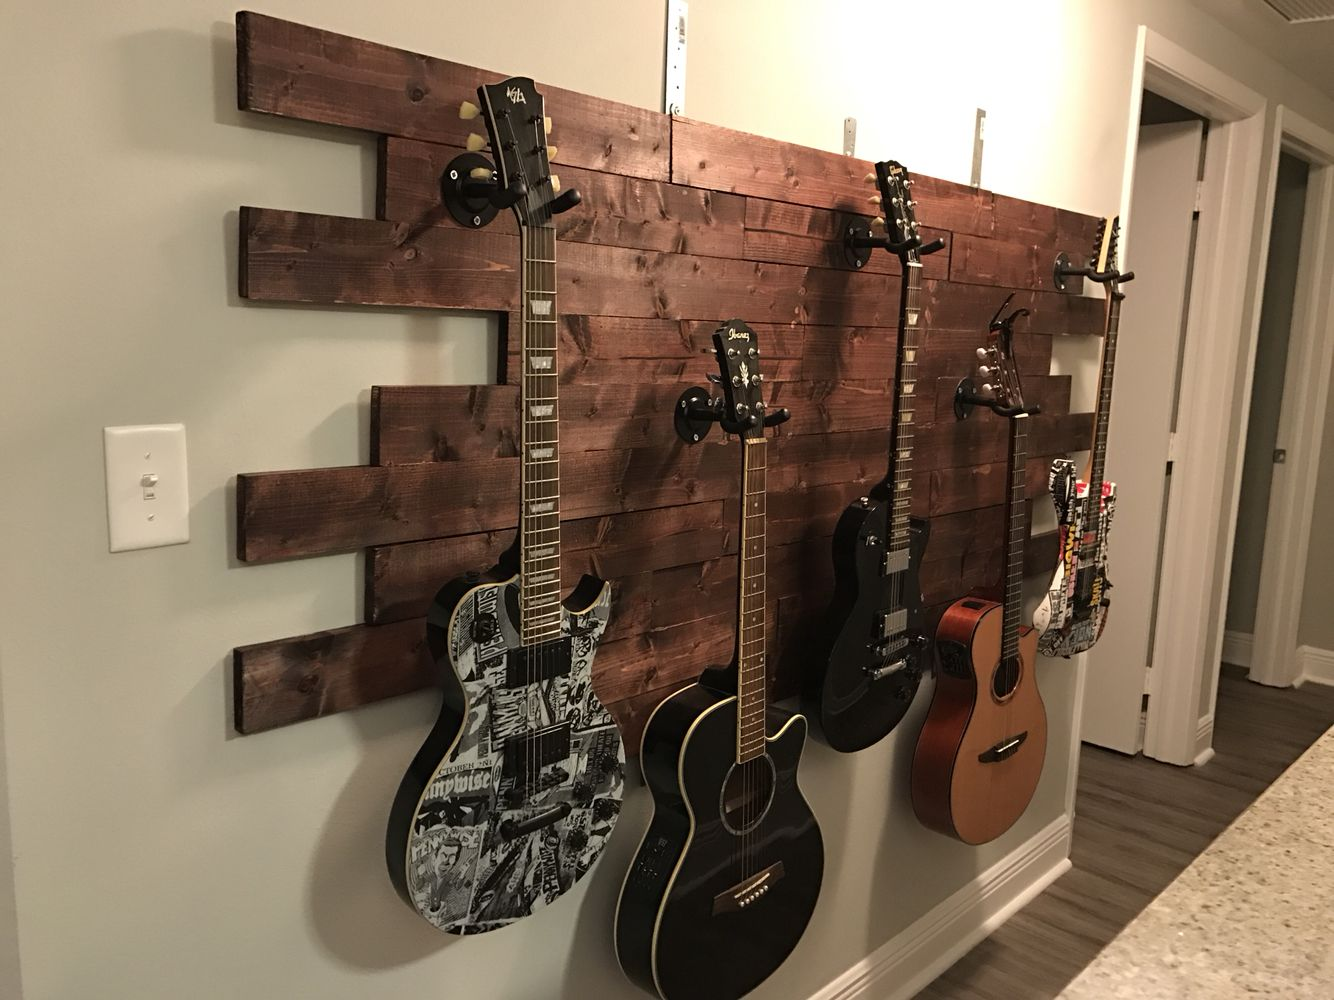 Guitar Decor For Bedroom The 25 43 Best Guitar Display Wall Ideas On Pinterest